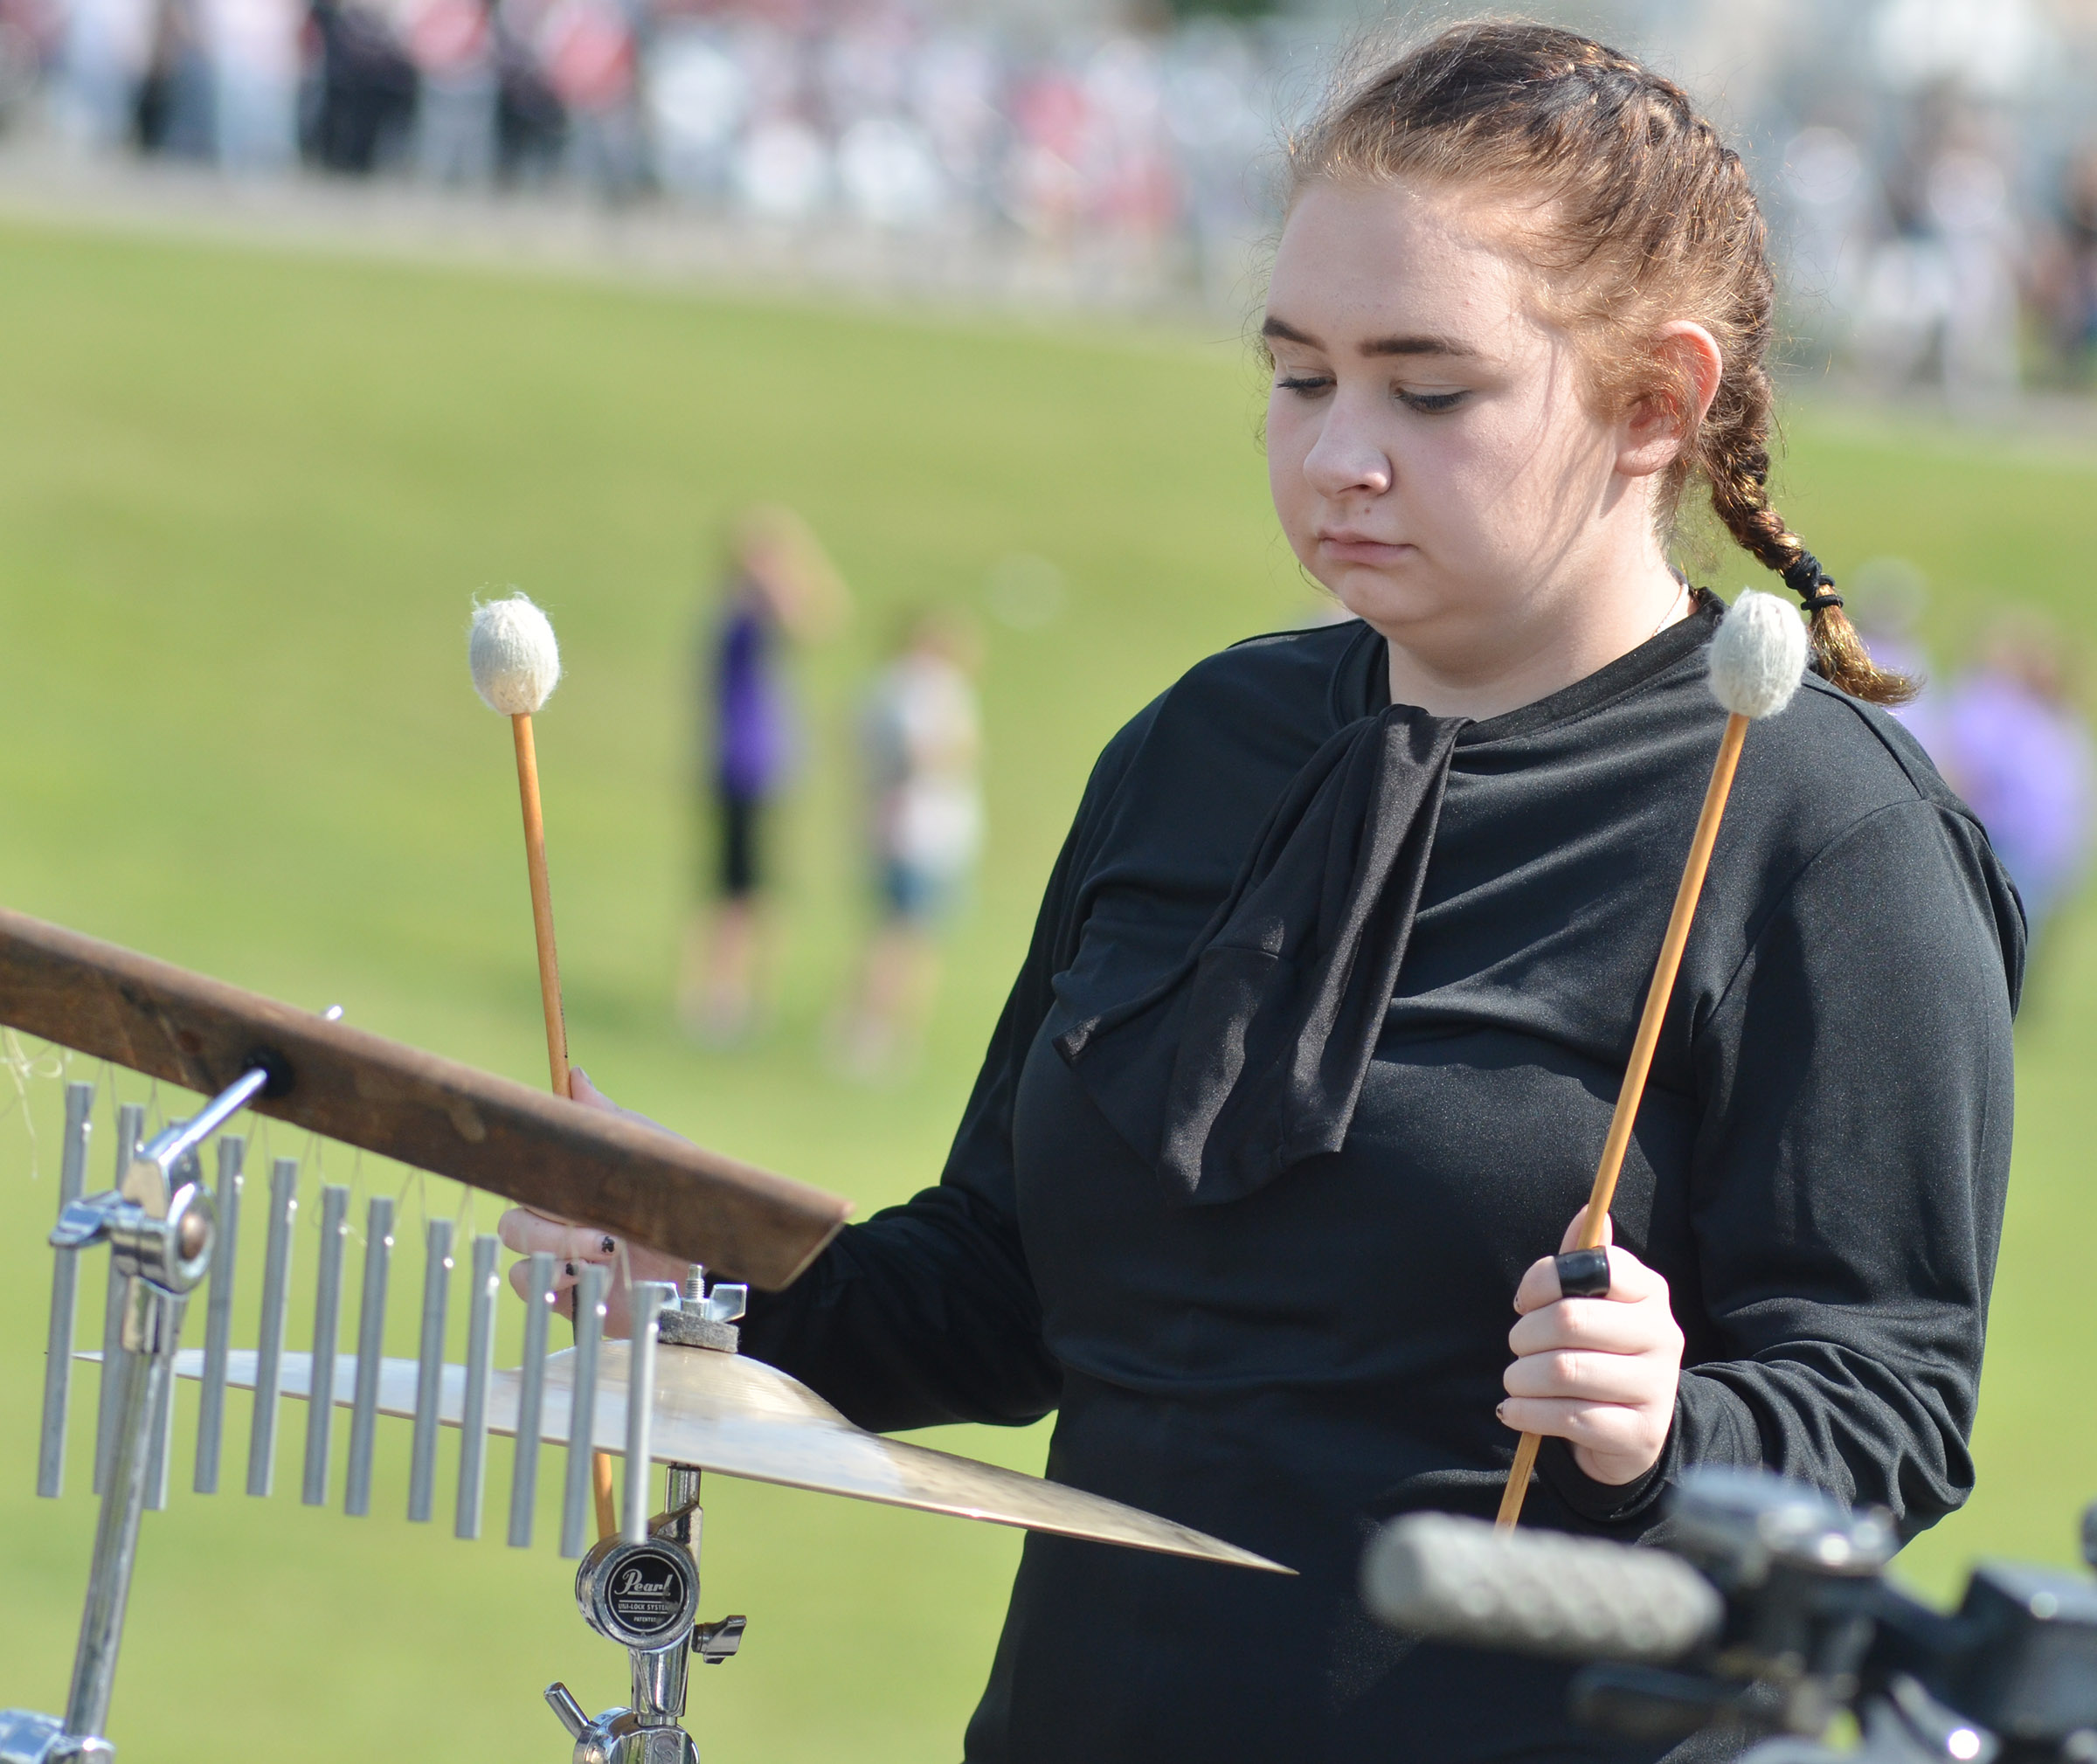 CHS junior Leslie McKenzie plays the cymbals.